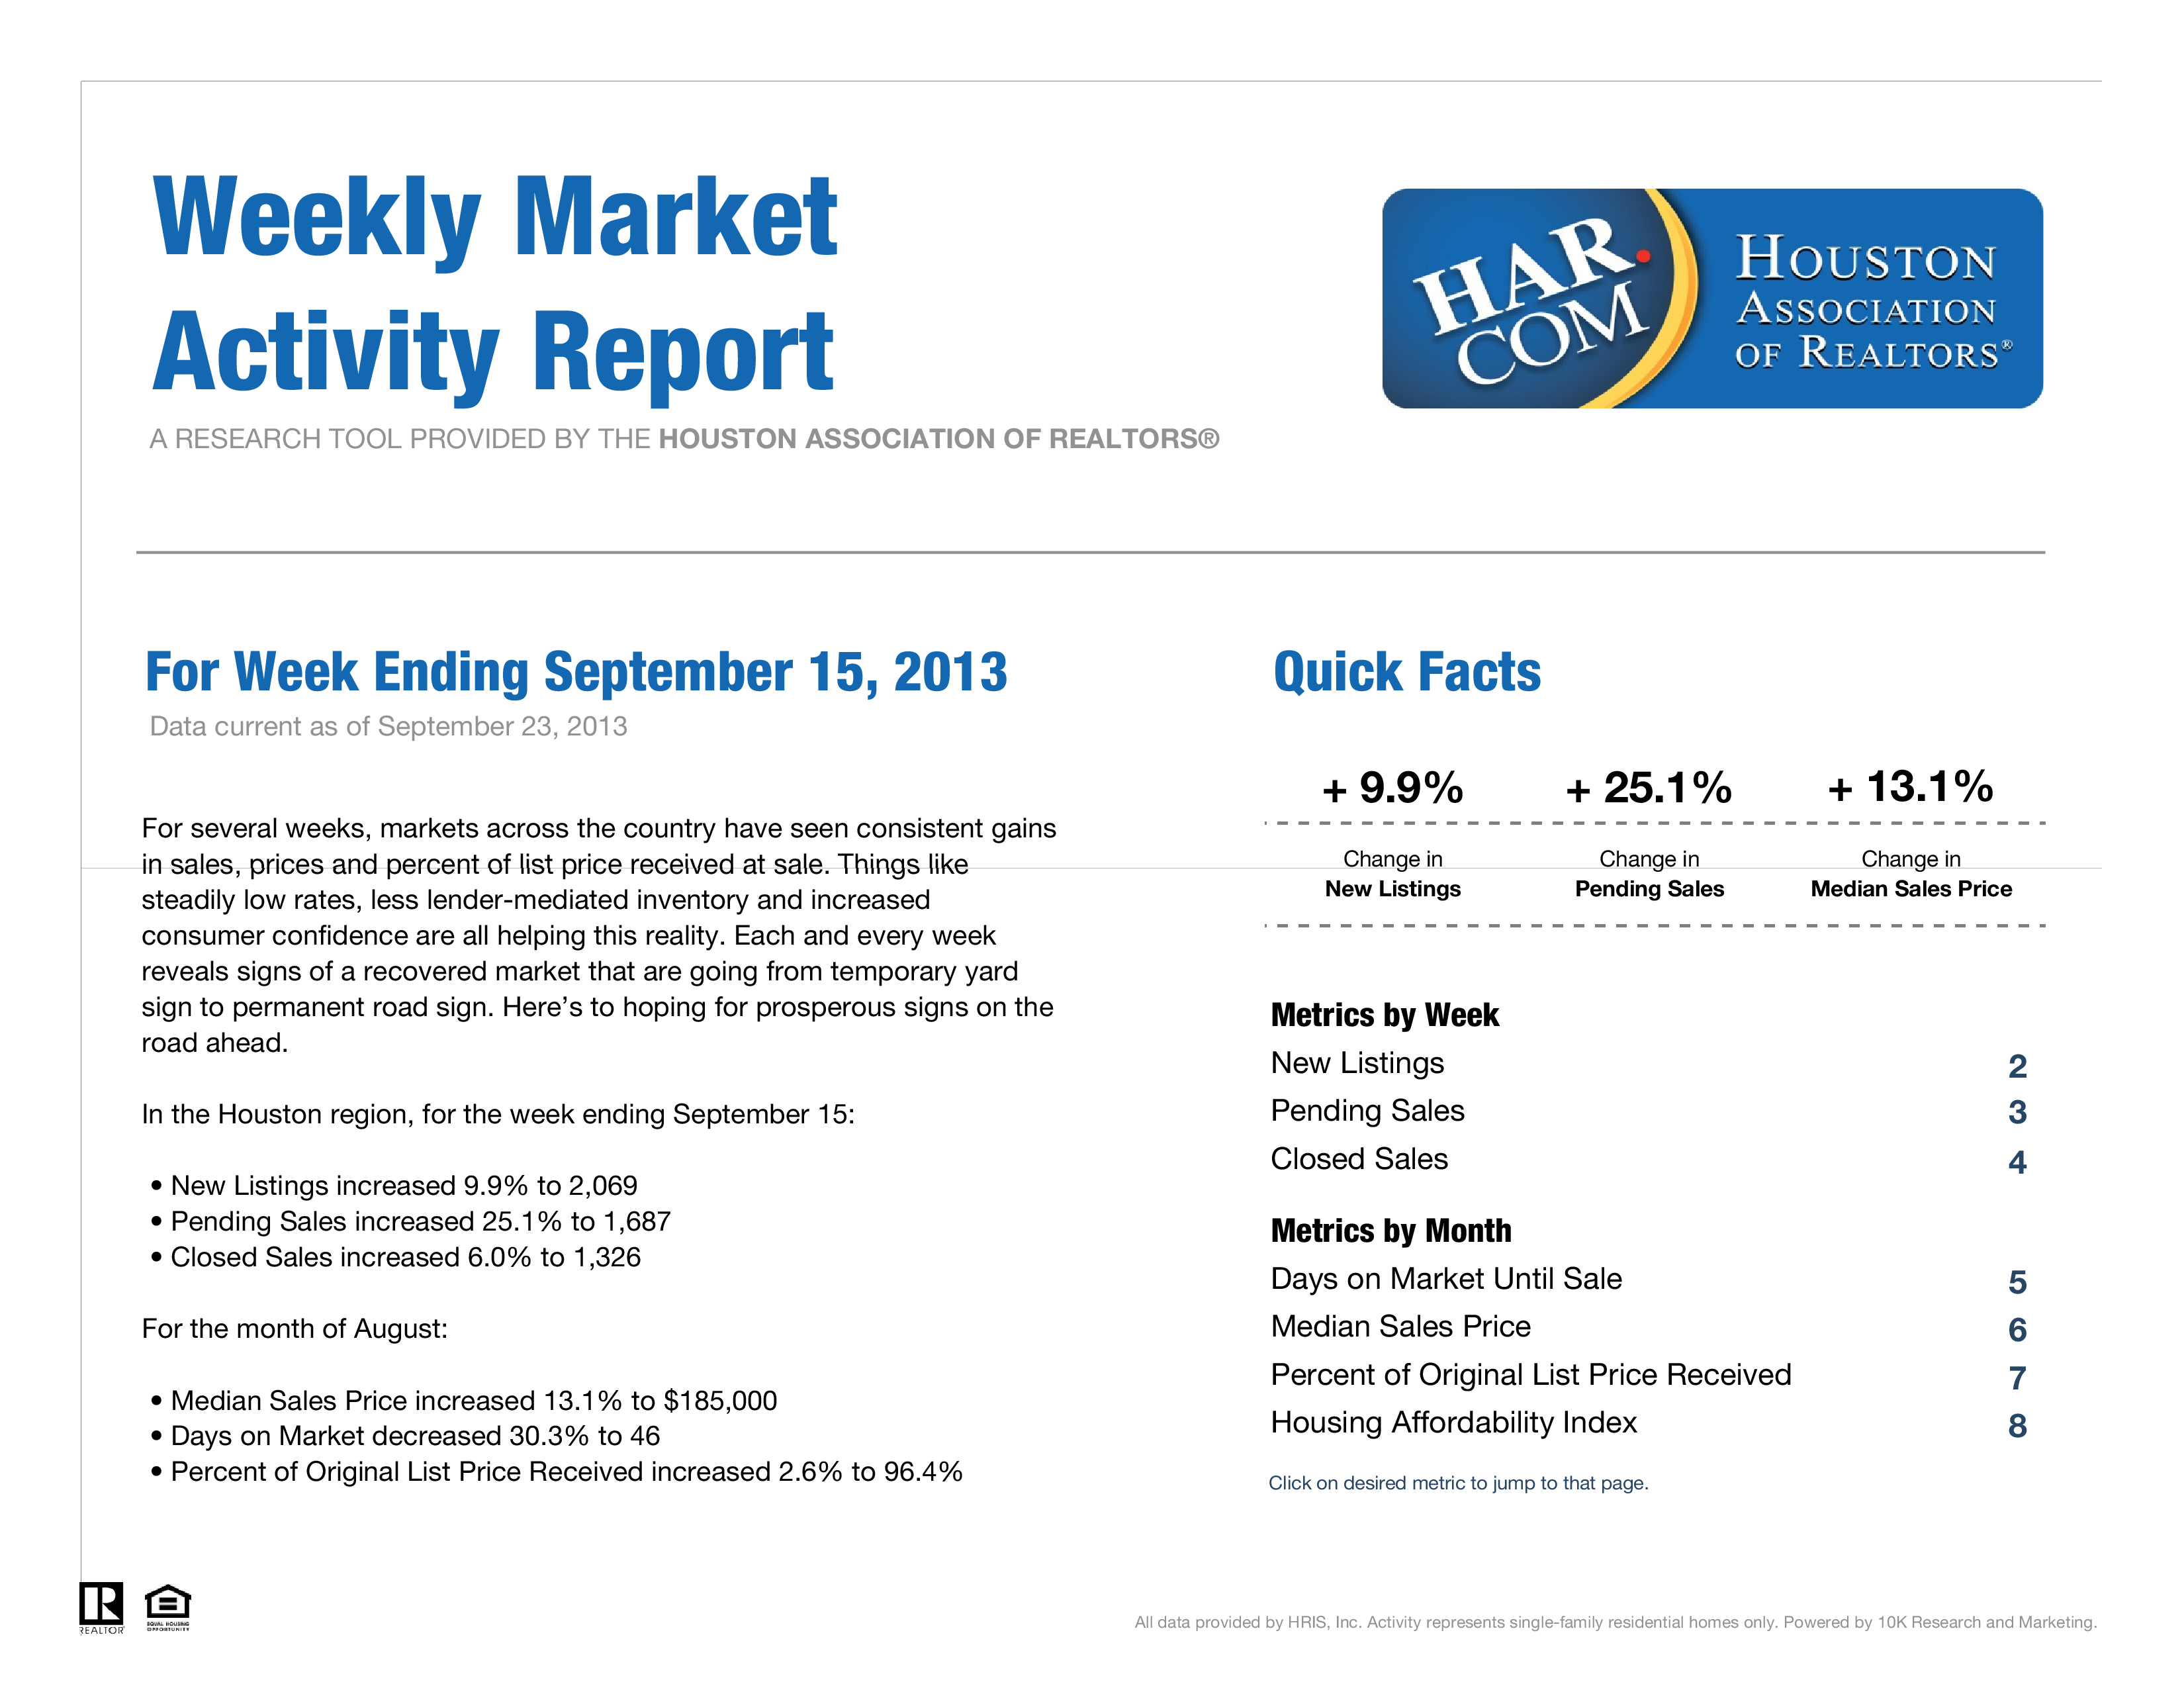 Weekly Activity Report Template | Free Weekly Market Activity Report Templates At